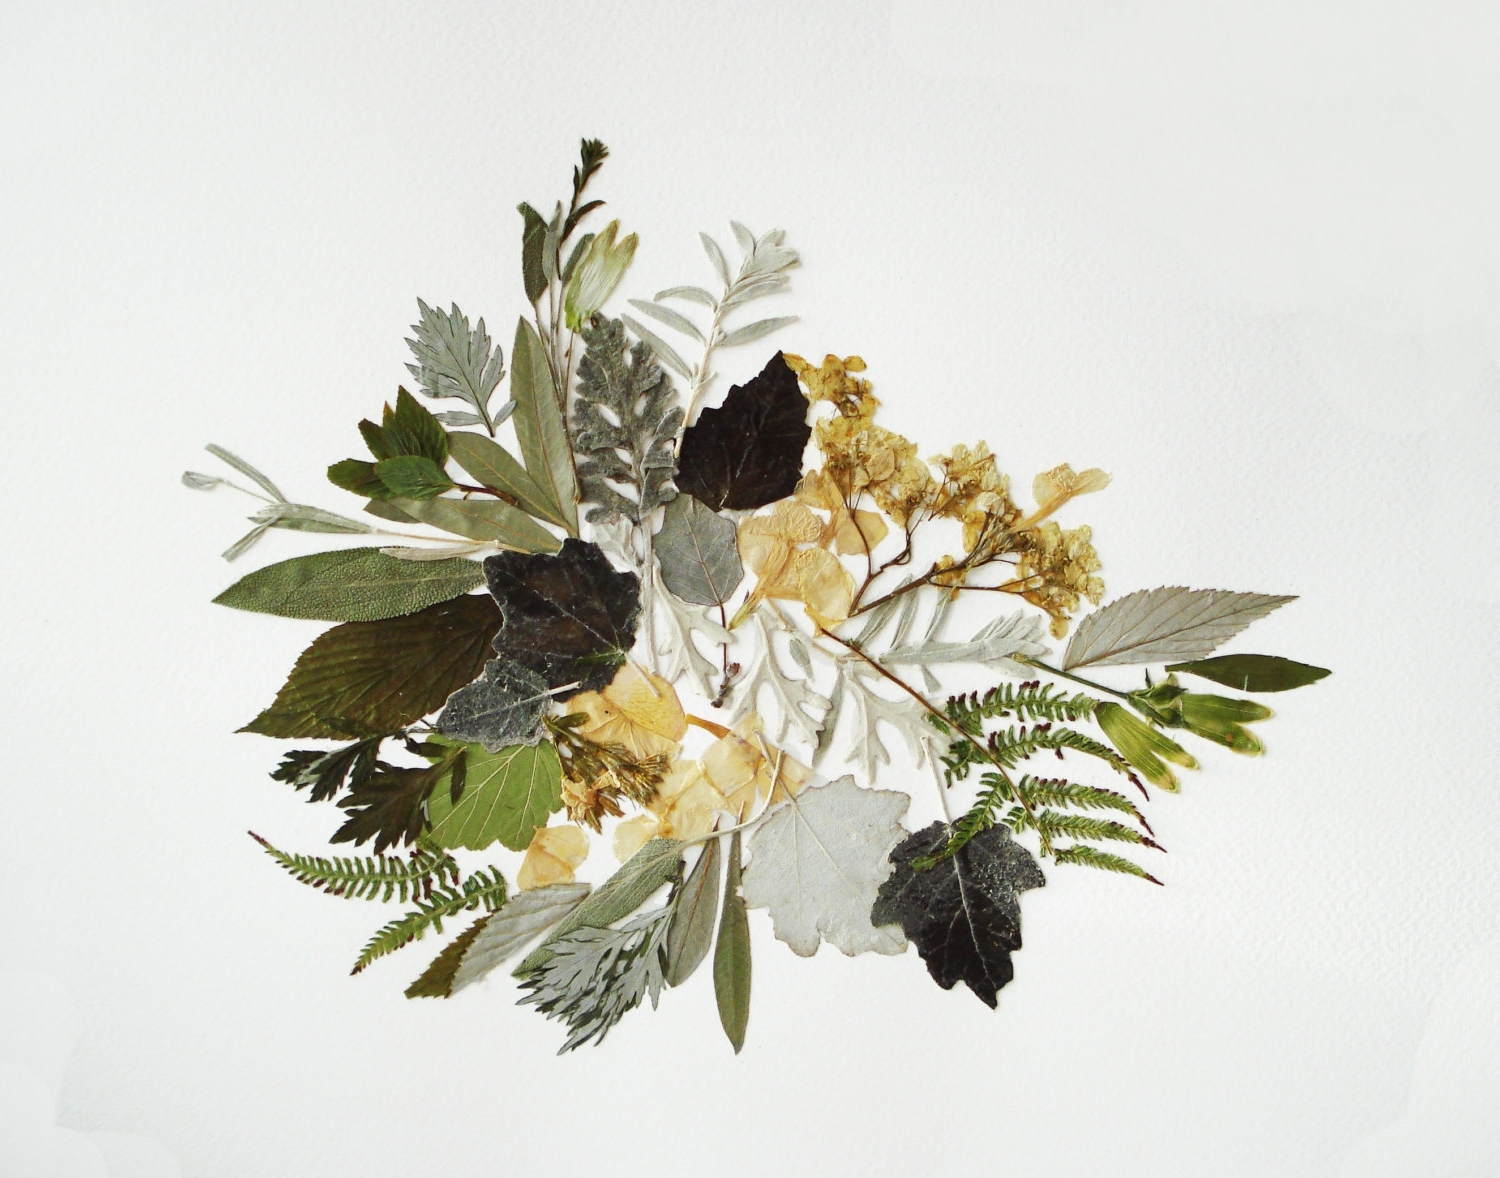 2018 Floral & Plant Wall Art In Floral Art Botanical Art Works Dried Flower Decor Unique Art (View 1 of 15)